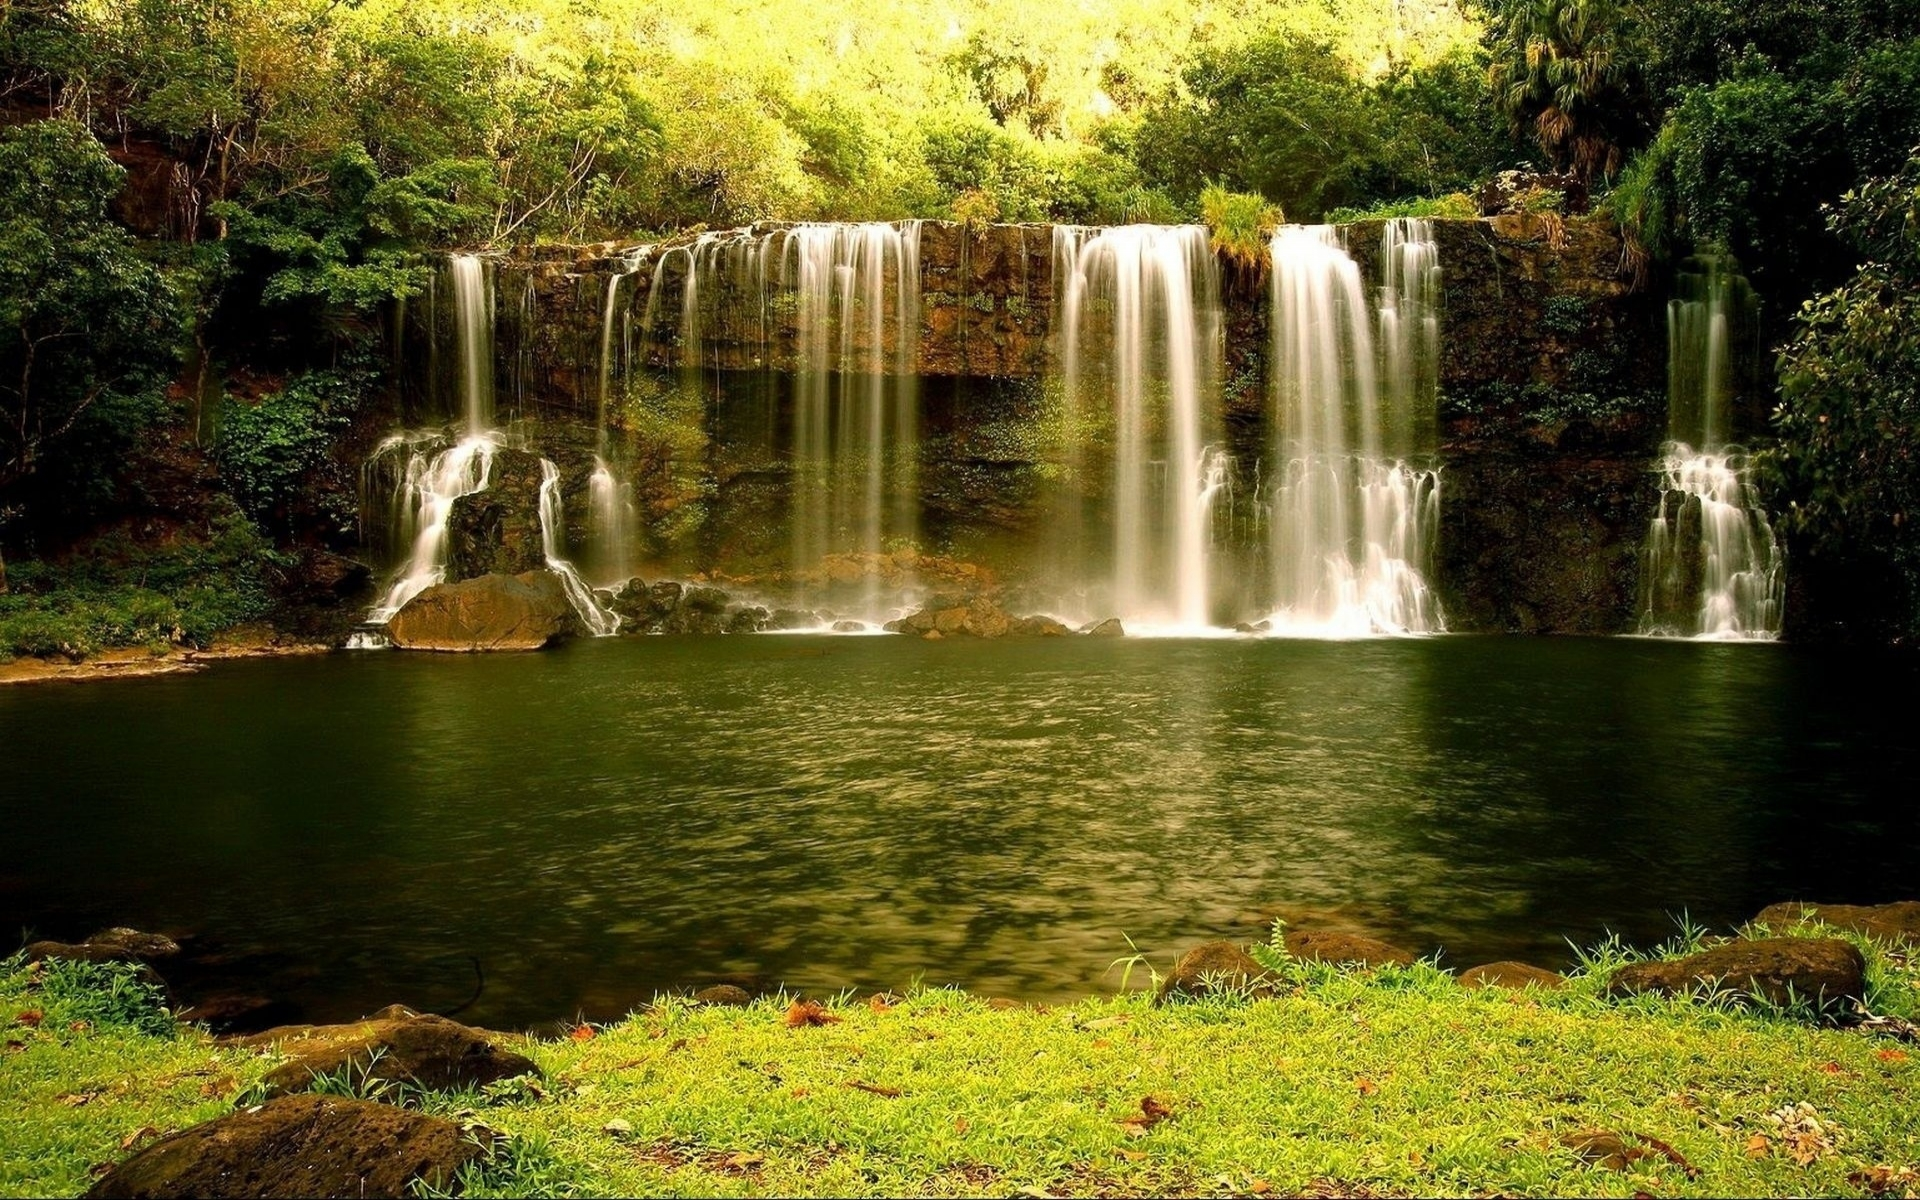 Wallpaper Of Water Fall Nature Landscapes Waterfall Cliff Rock Stone Rivers Stream